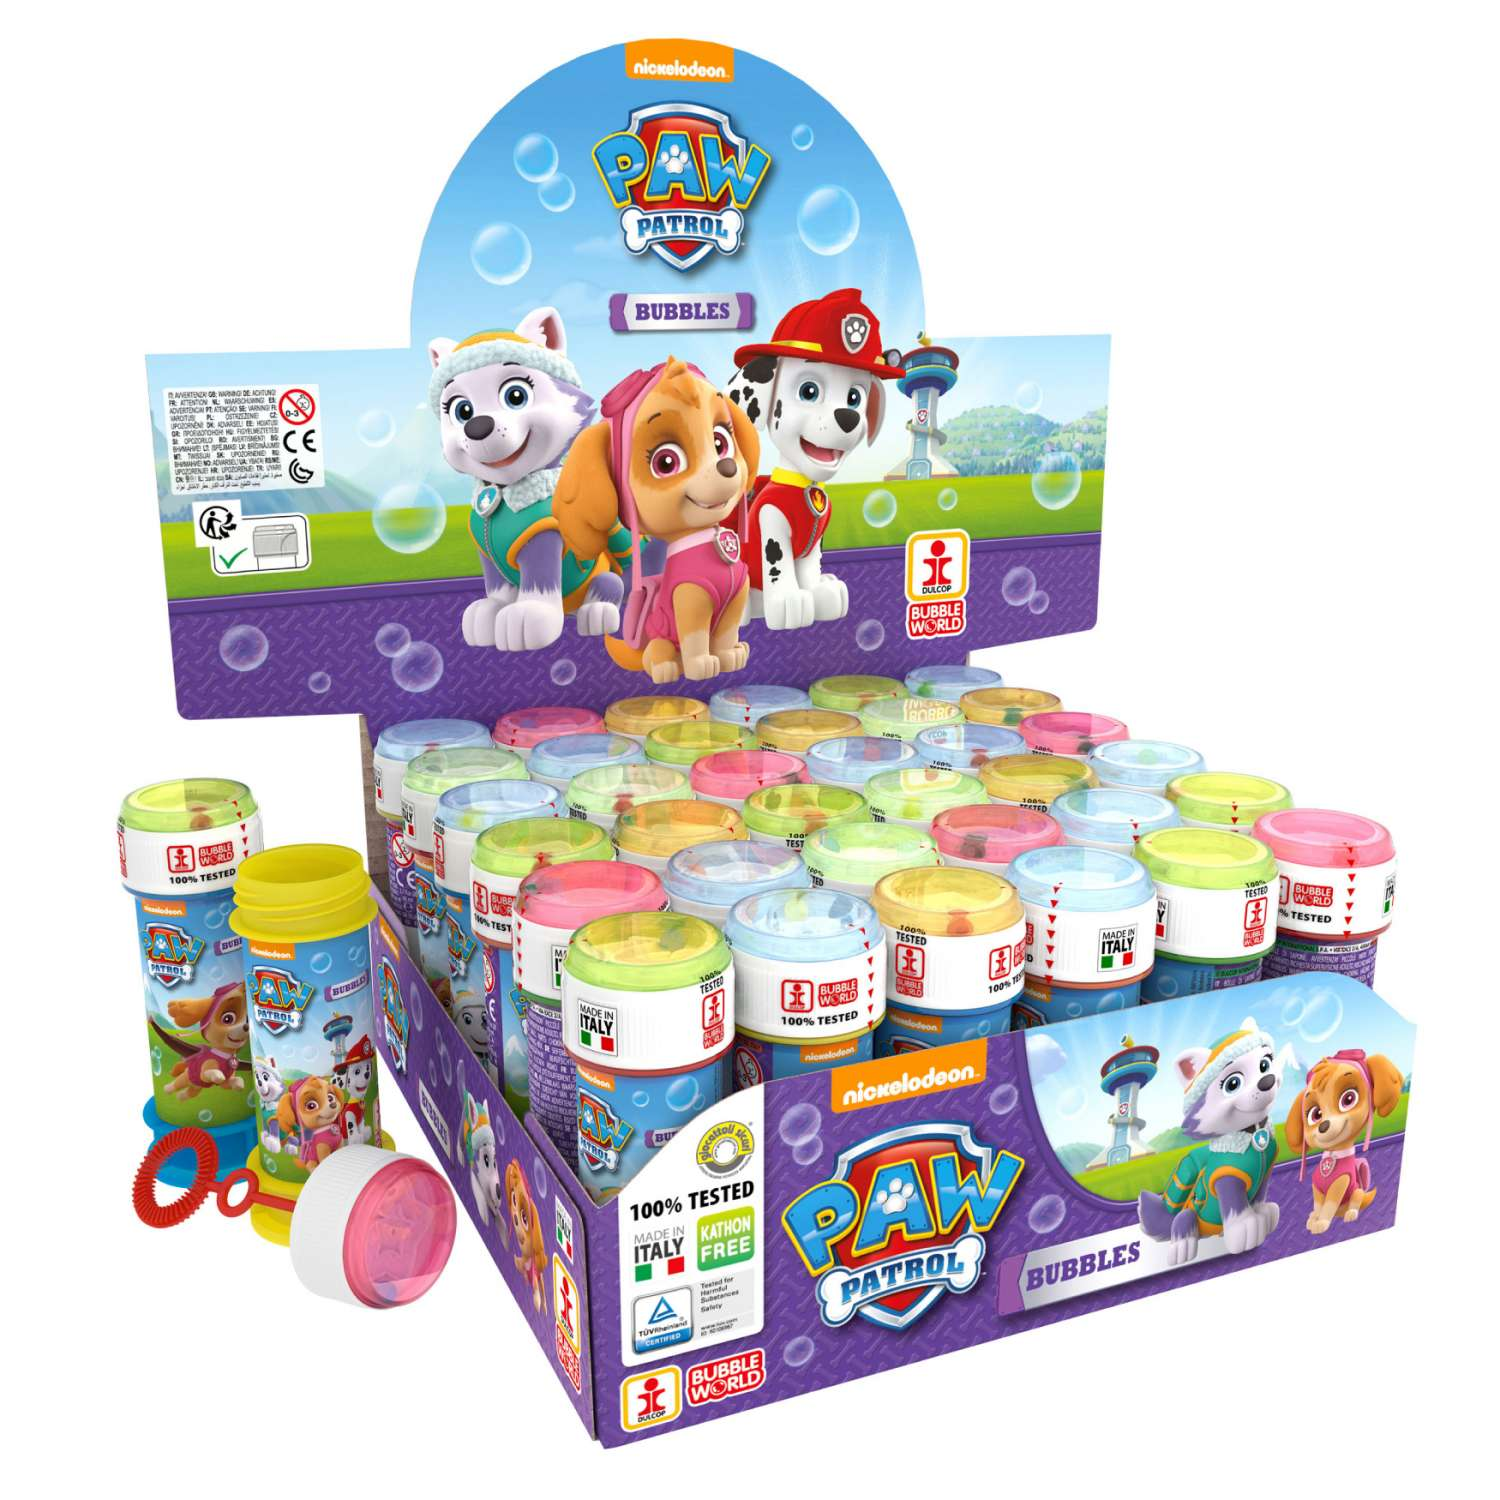 Paw patrol PINK bubble tubs 60ml - Homeware Essentials